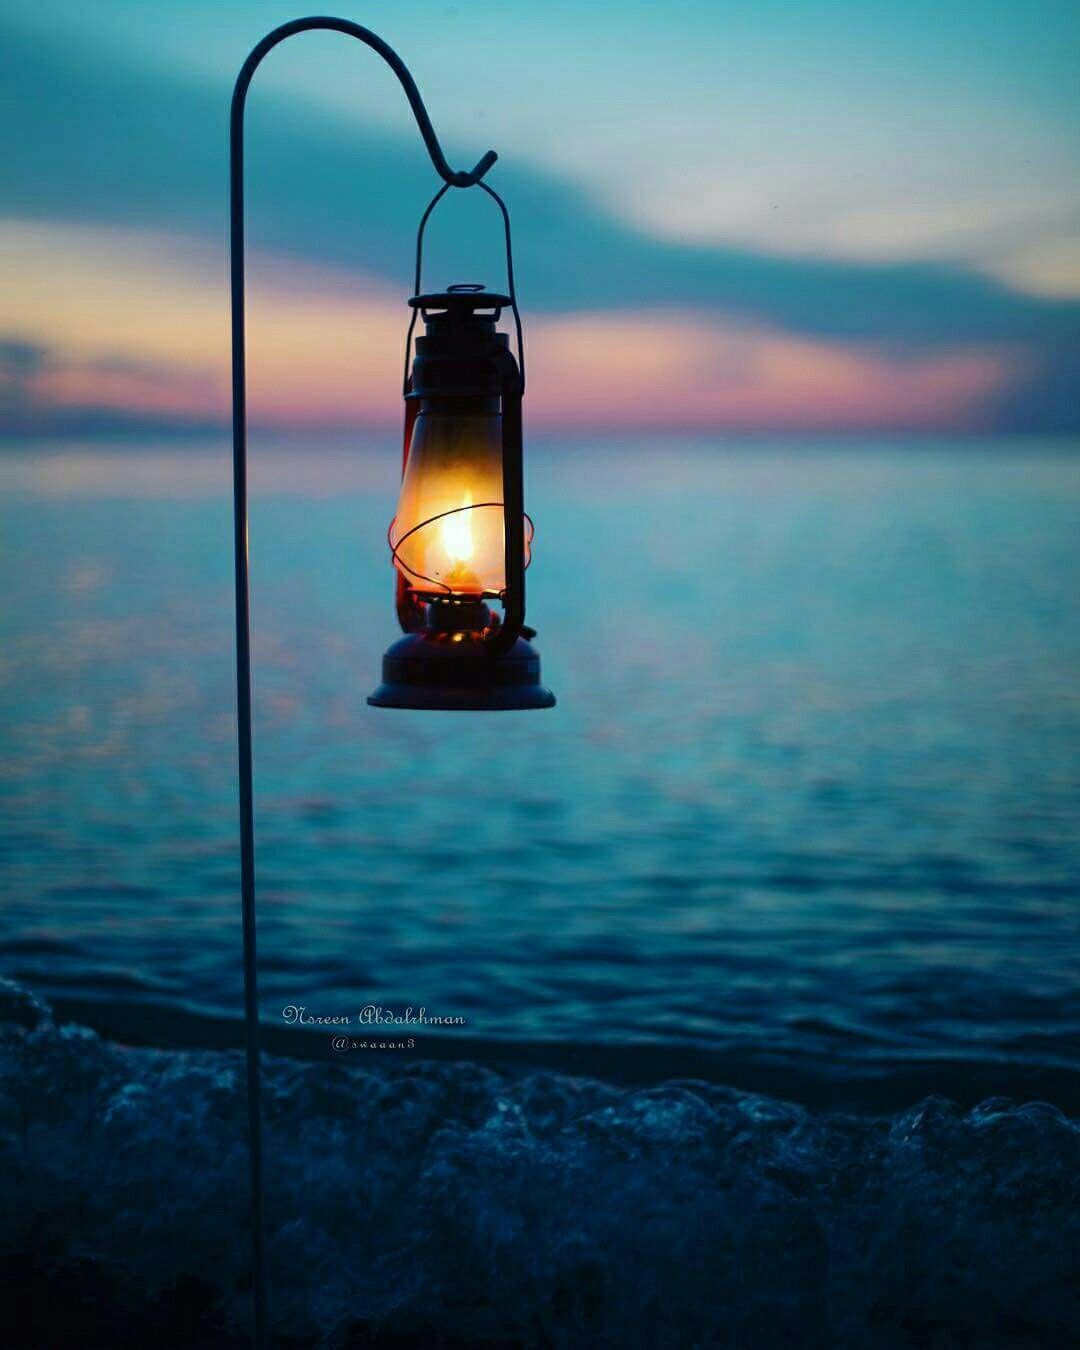 Pin By Rahul Yadav On Inspiration Candle Aesthetic Oil Lamps Old Lanterns